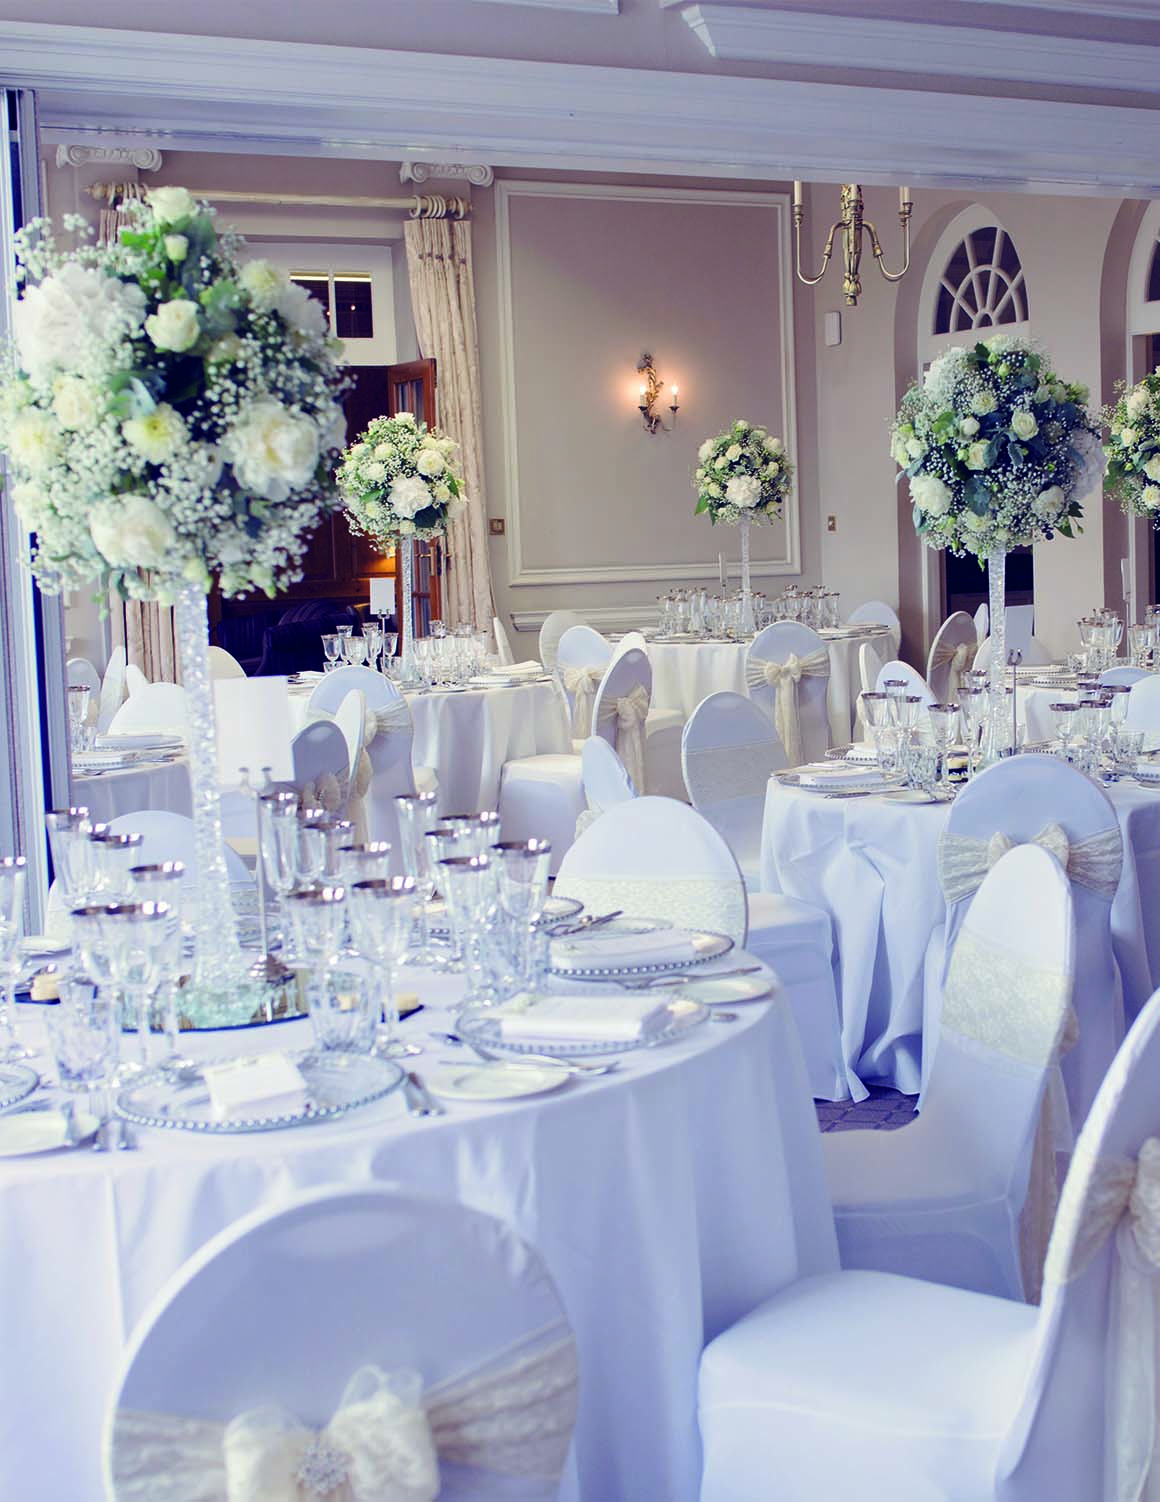 Brockencote Hall Hotel Wedding prices wedding set up